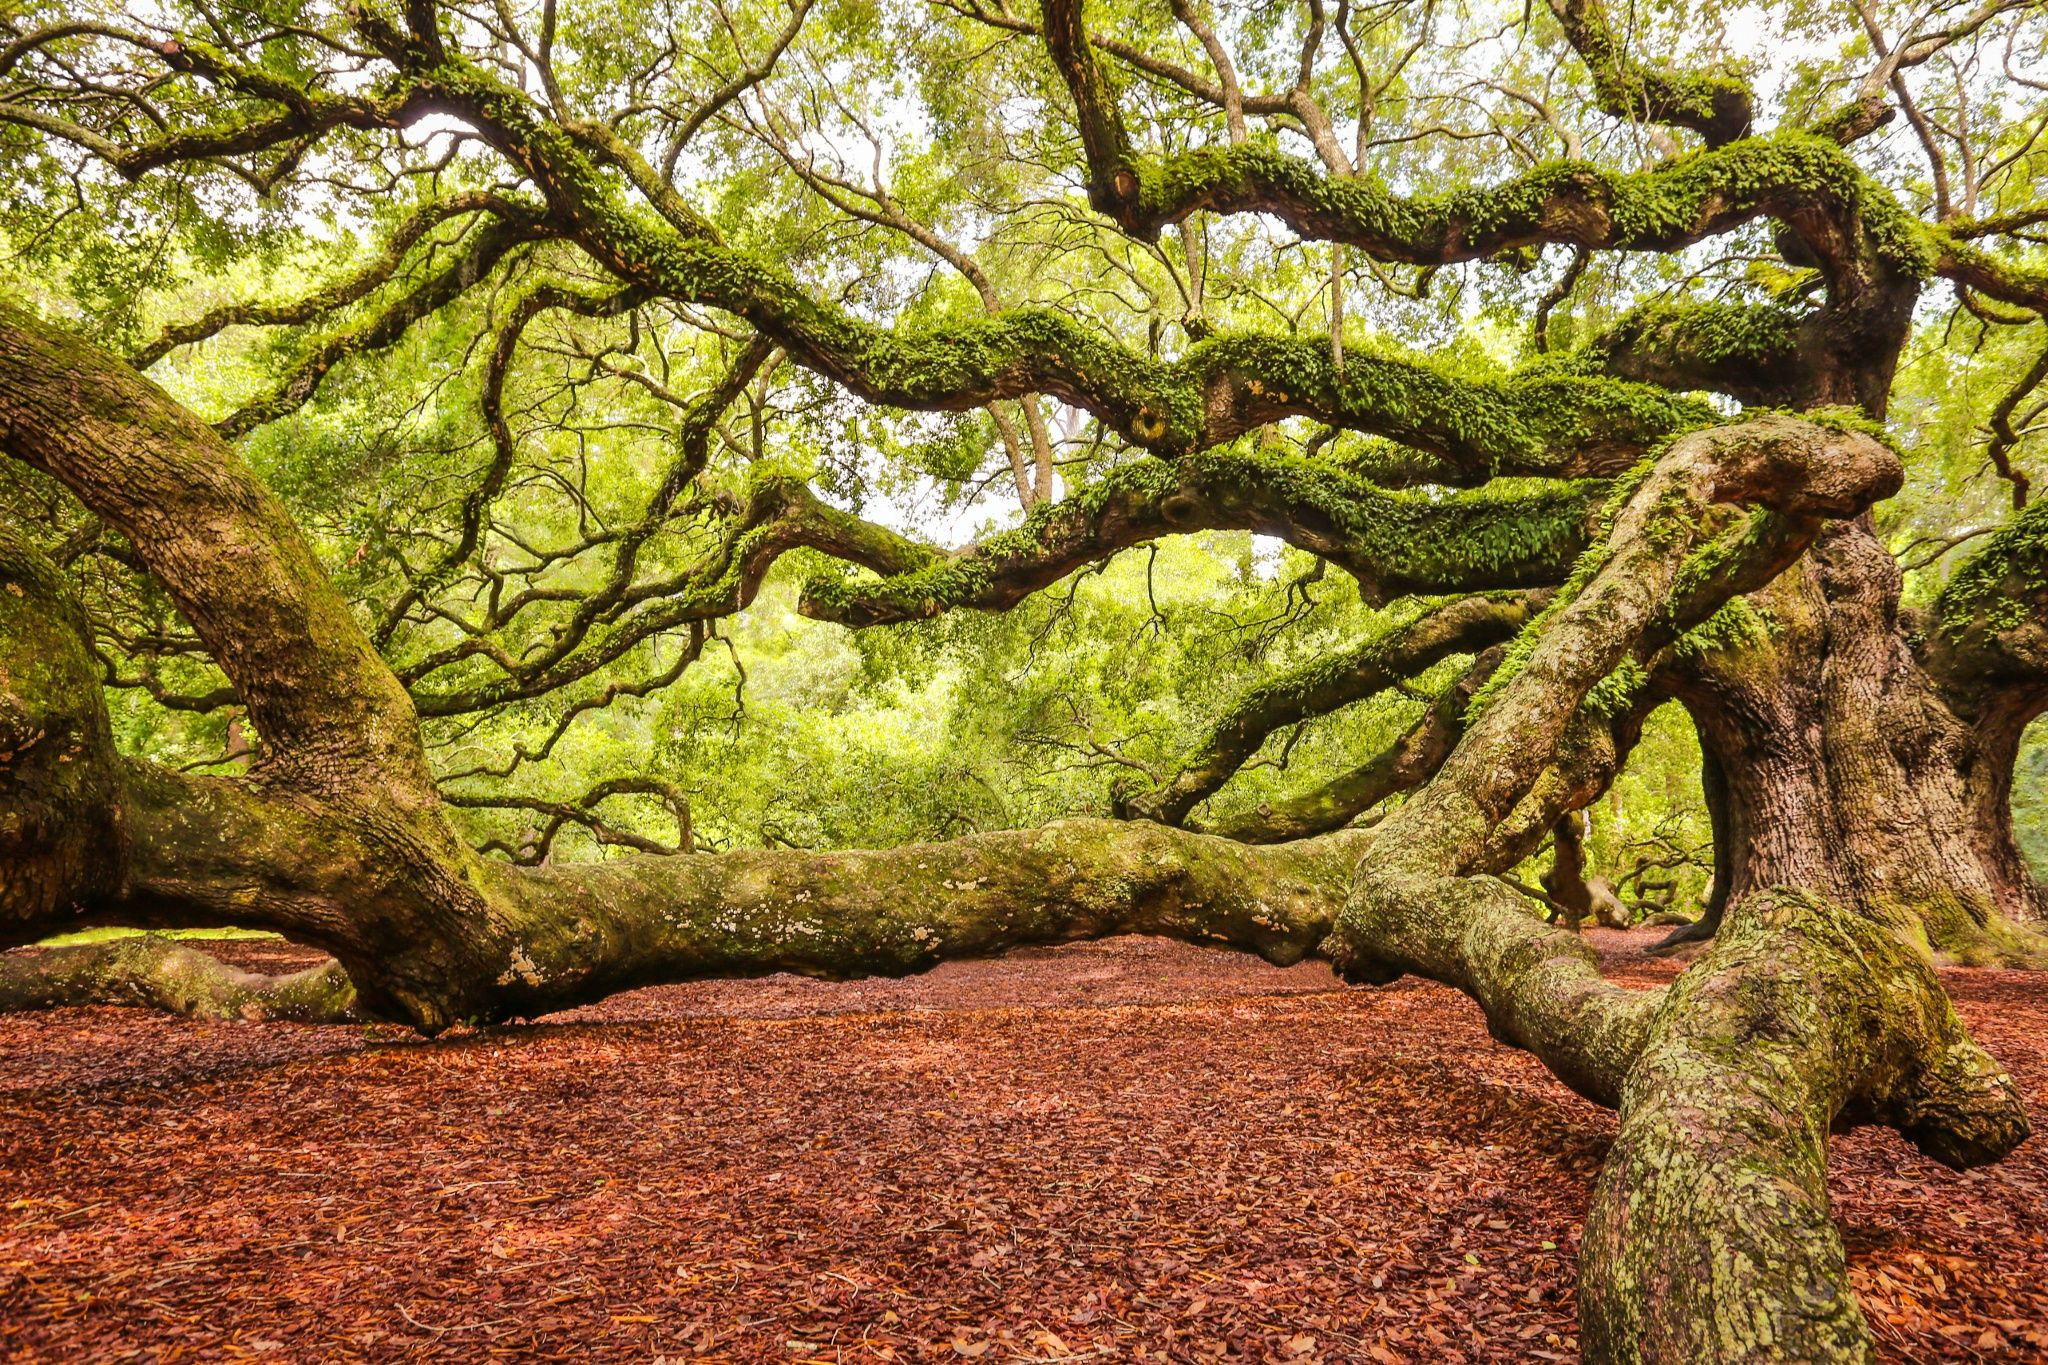 Branching out by Daniela Duncan on 500px